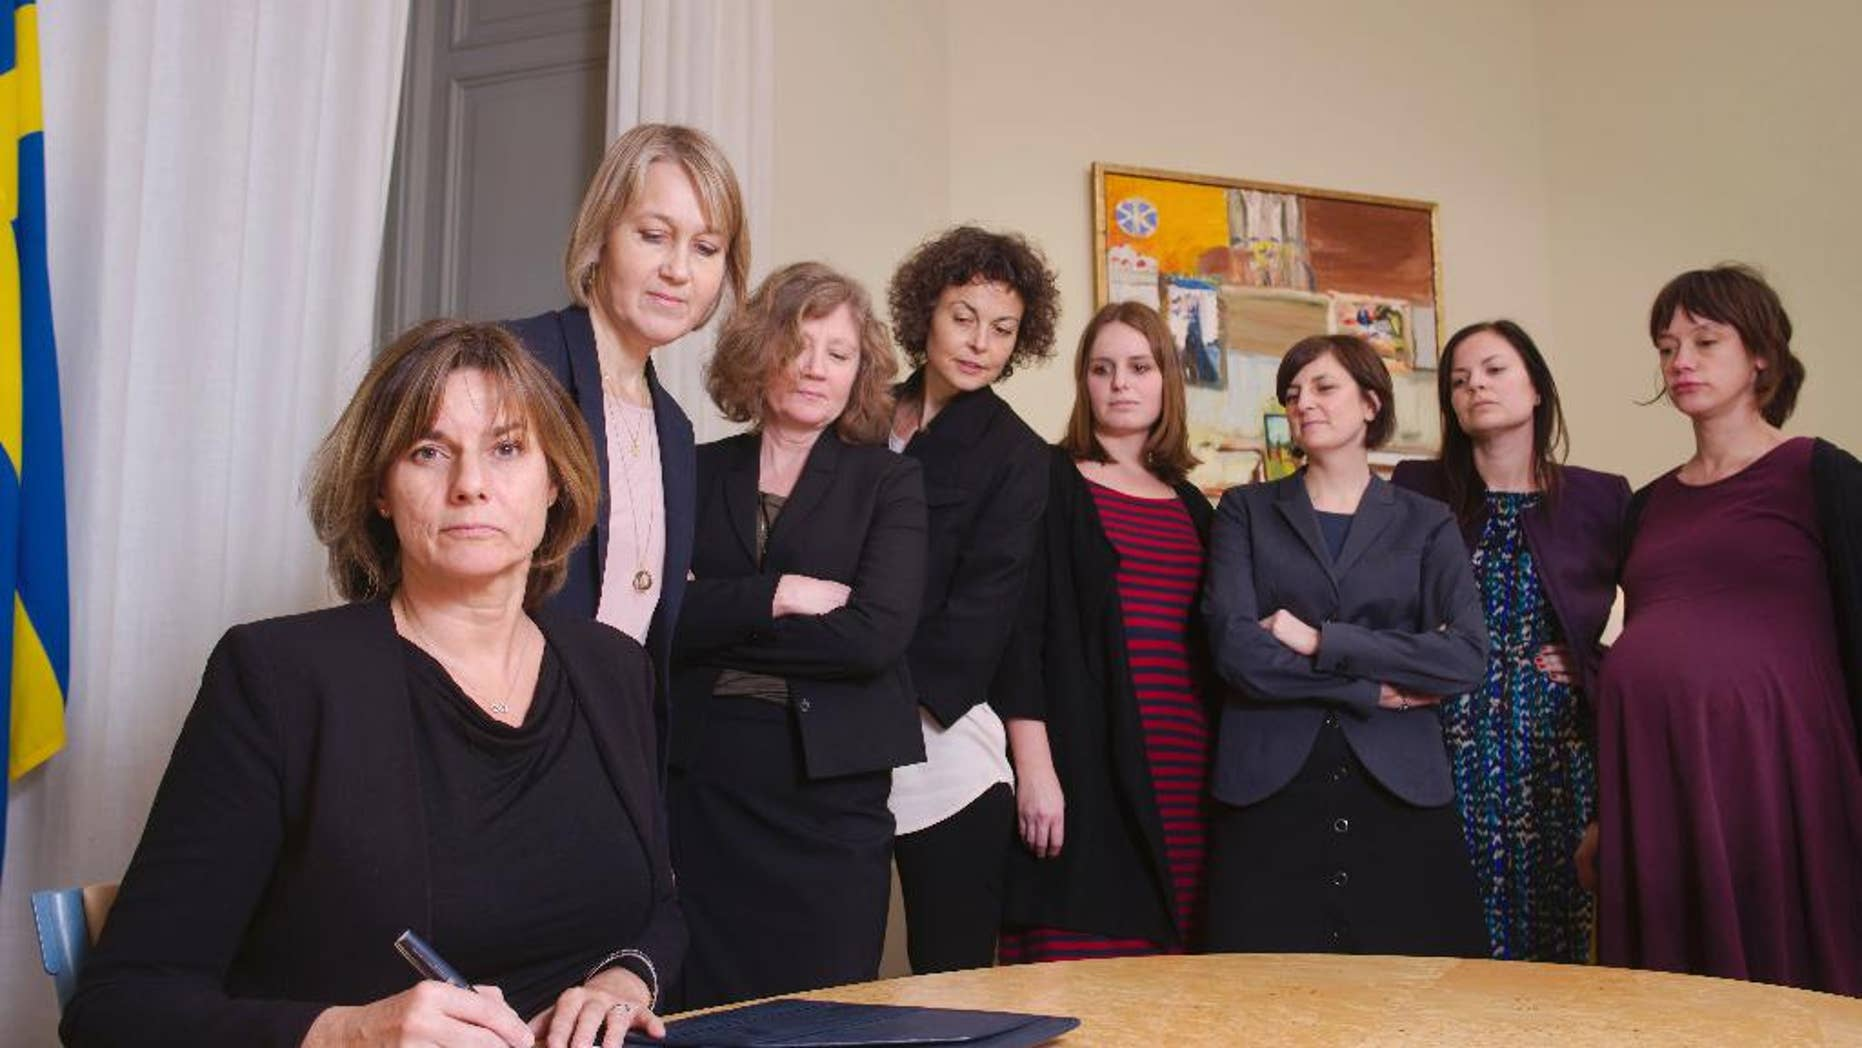 In this handout photo provided by the Swedish Government, Sweden's Deputy Prime Minister Isabella Lovin, left, signs a proposal for the Scandinavian country's new climate law in Stockholm, Friday, Feb. 3, 2017. Sweden's Deputy Prime Minister has posted on Facebook an all-woman photo including herself signing a proposal for the Scandinavian country's new climate law - a photo many online commentators have taken as a direct swipe at Donald Trump.  (Johan Schiff/Swedish Government via AP)